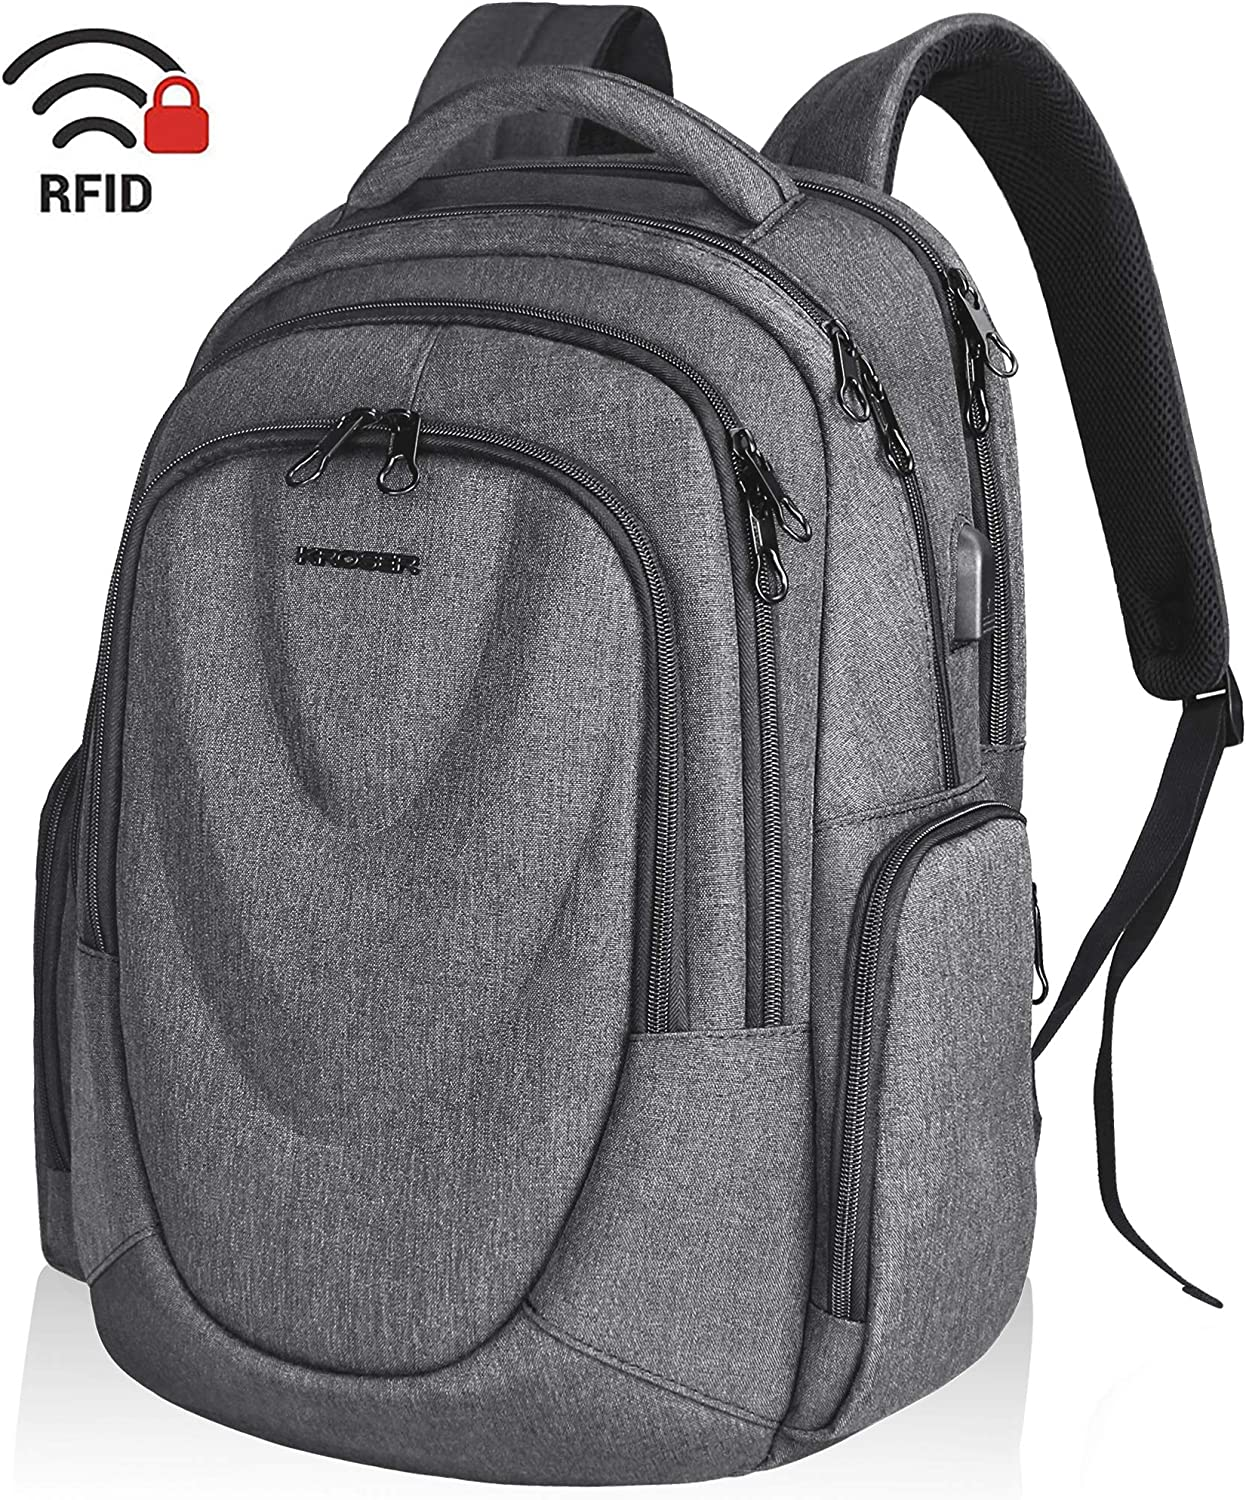 KROSER Travel Laptop Backpack 17.3 Inch Molded Front Panel Large Computer Daypack Water-Repellent with RFID Pockets USB Charging Port for Work Business College Men Women-Grey